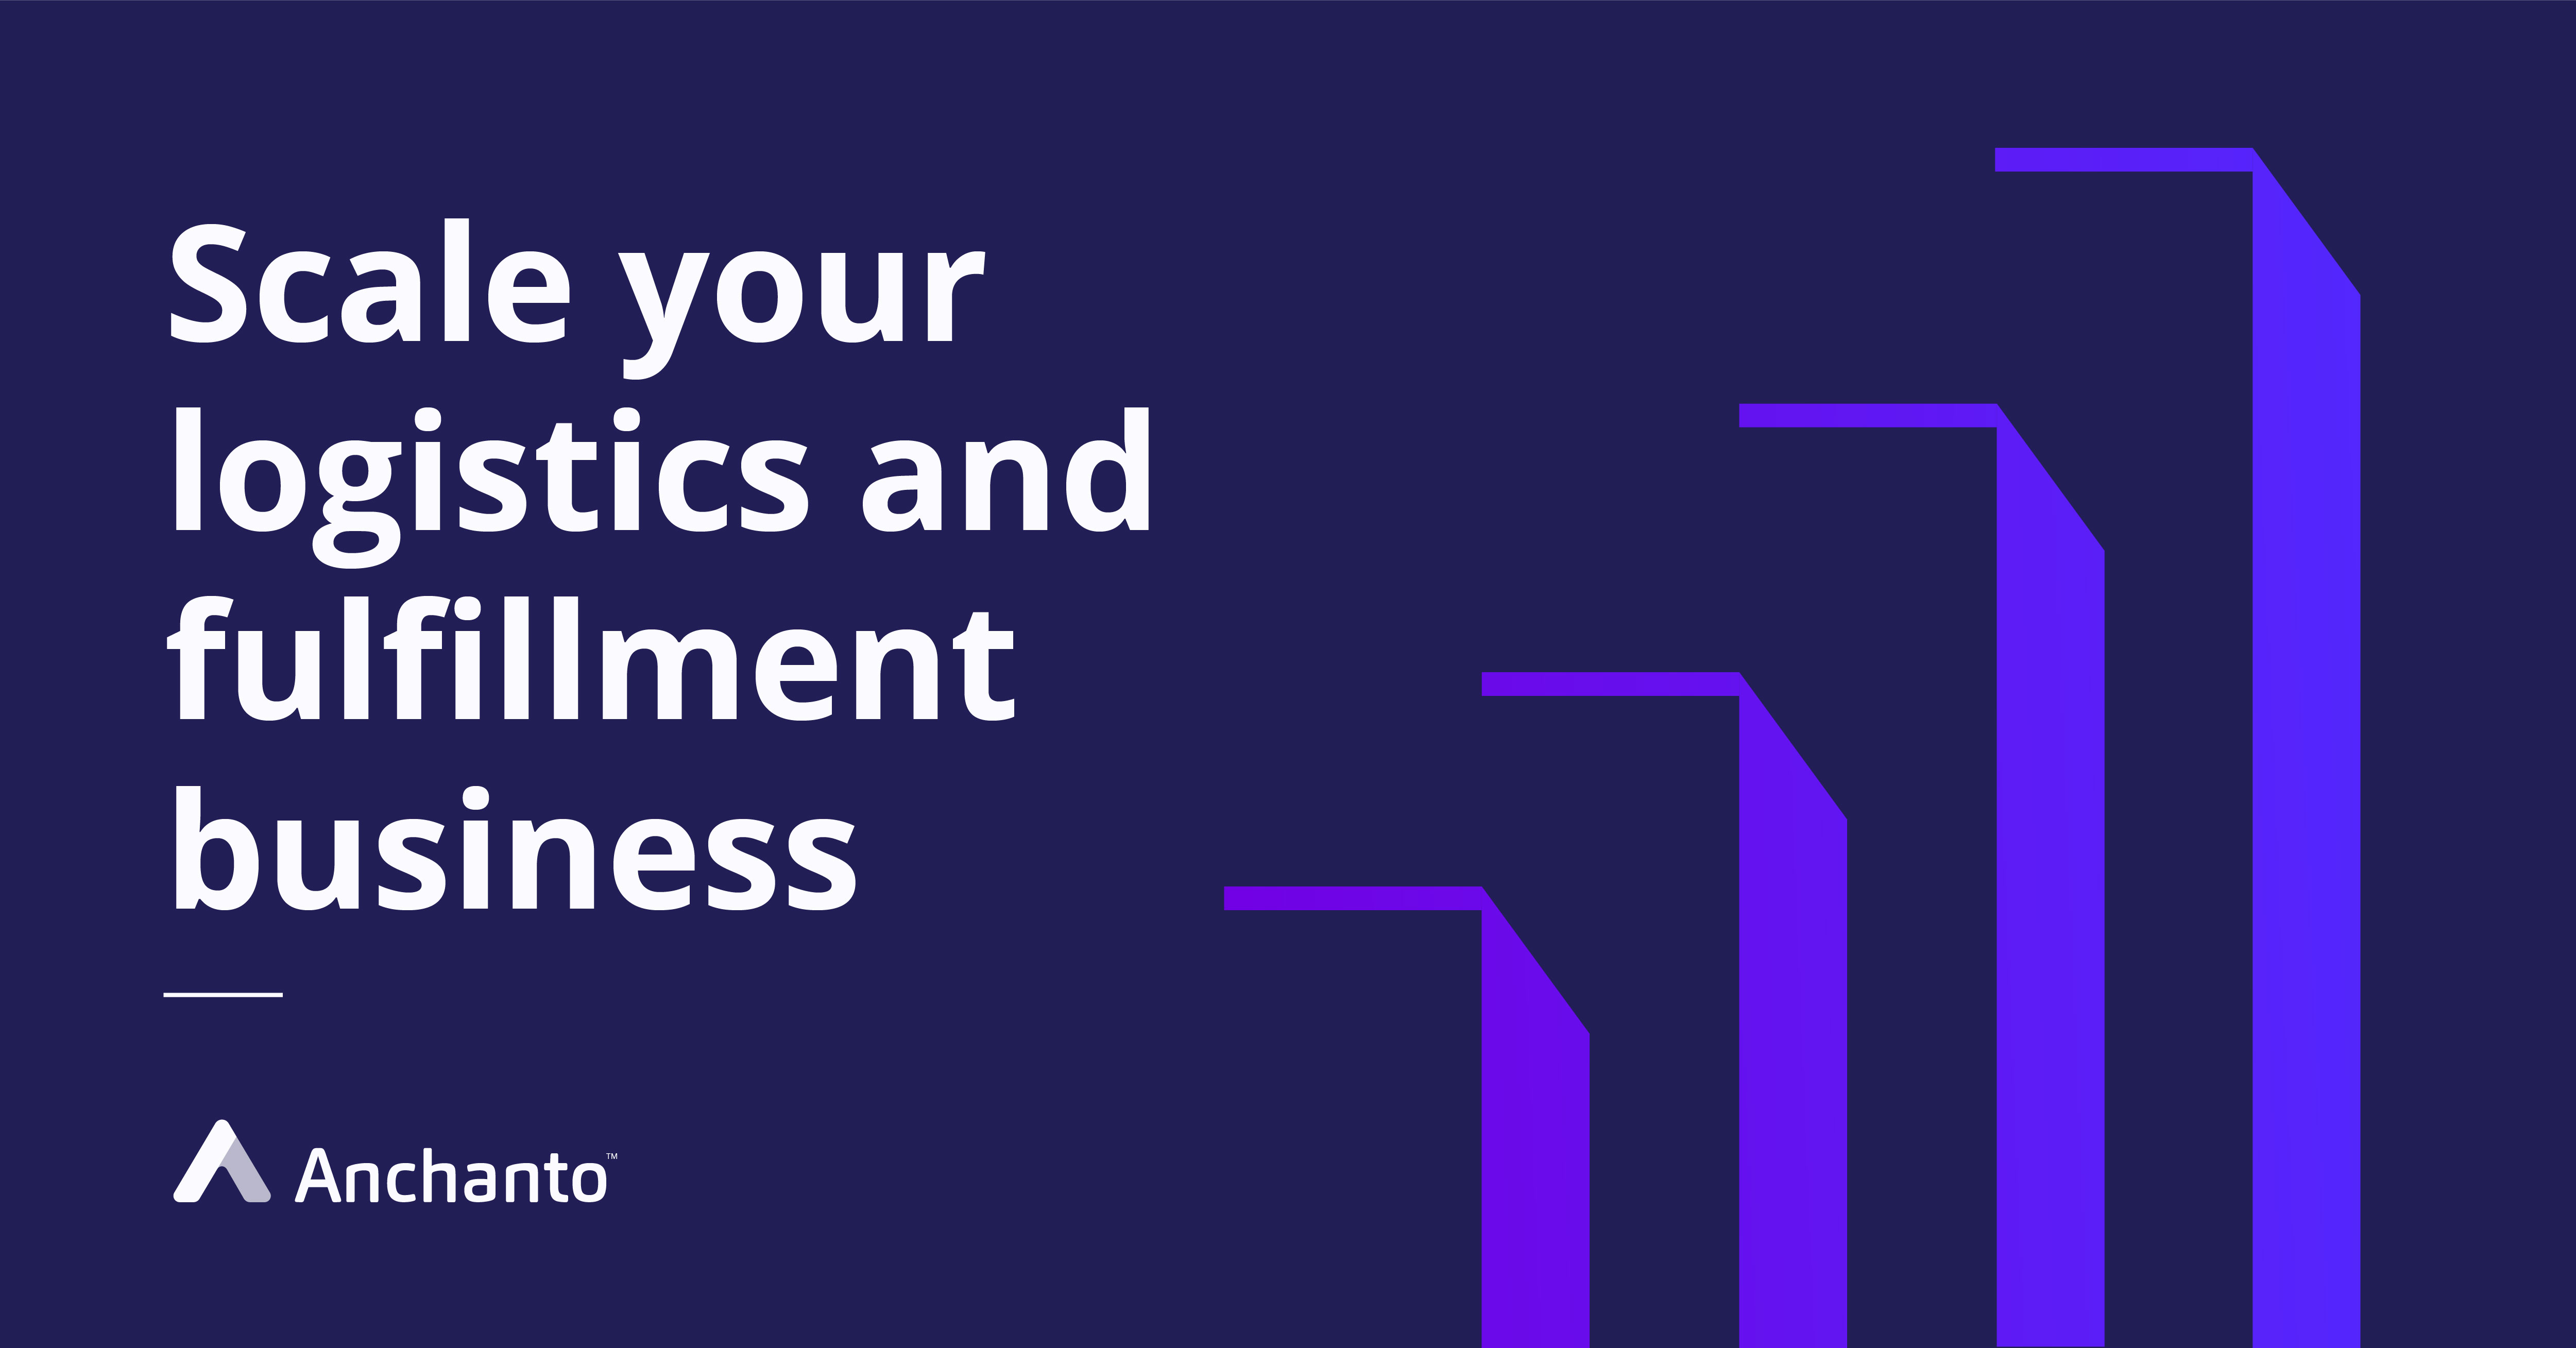 Scaling your logistics and fulfillment business with the right technology.